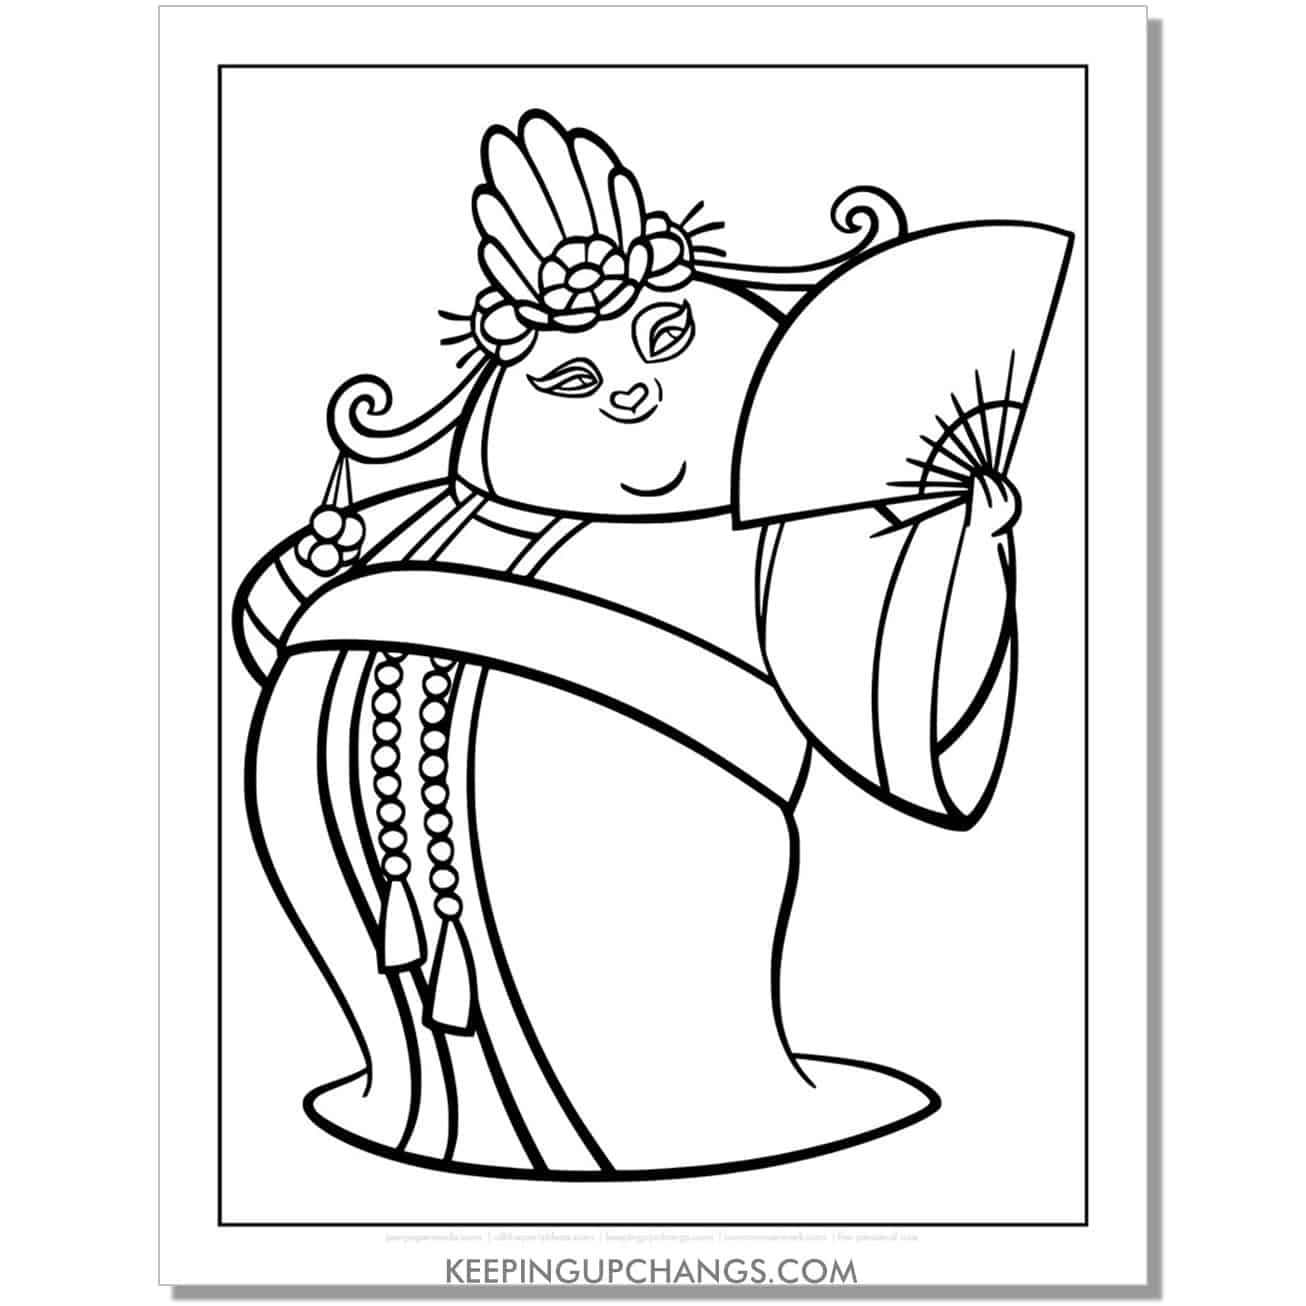 free po dressed as woman coloring page.